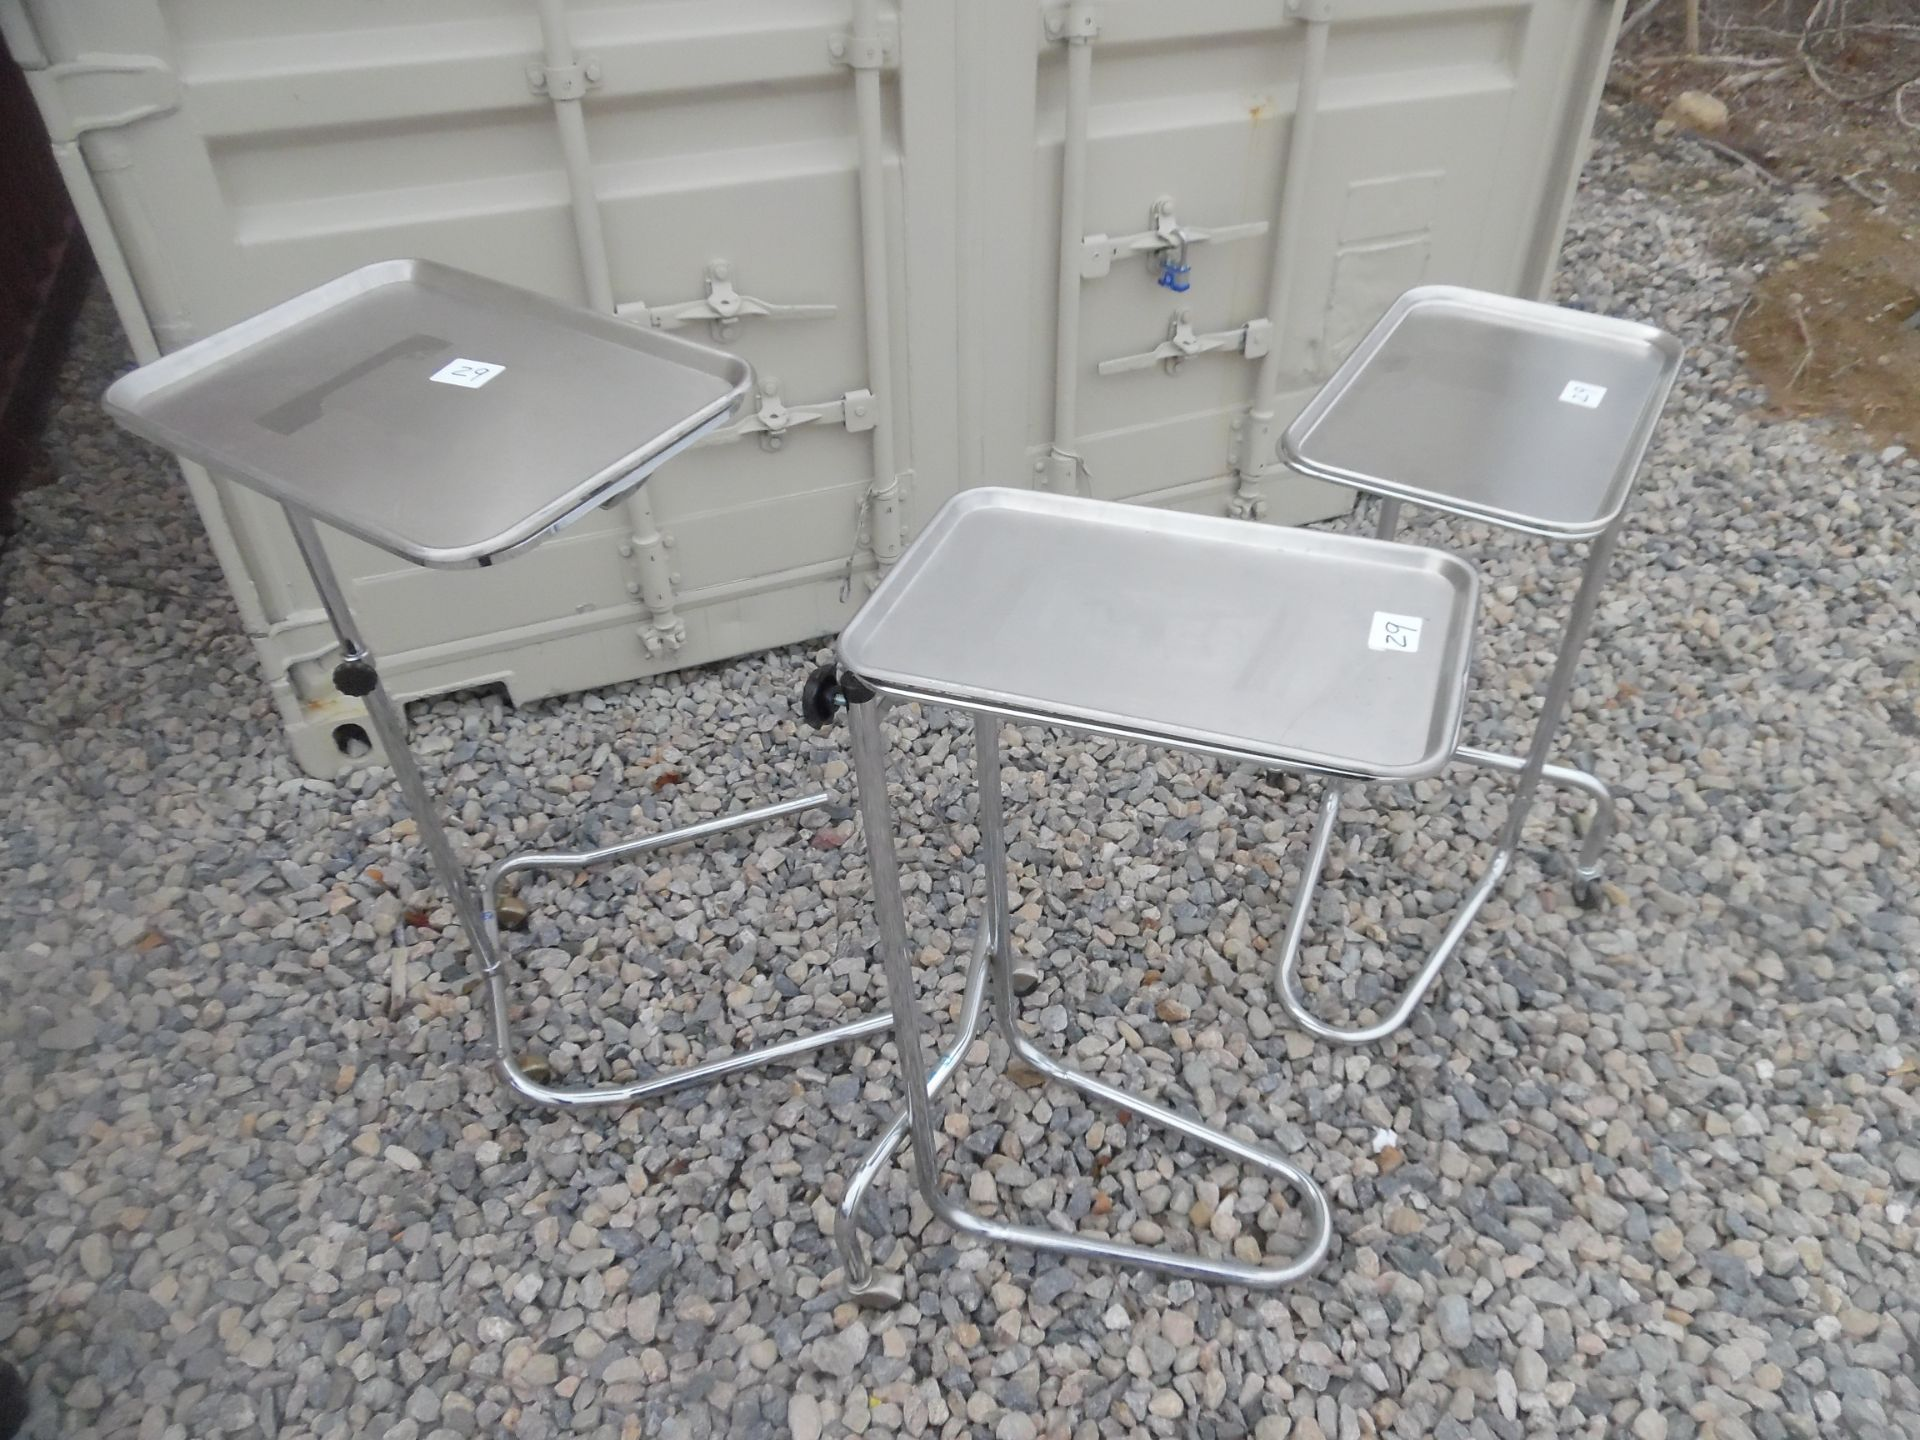 Lot of 3 Medical/surgical stands with trays. - Image 2 of 4